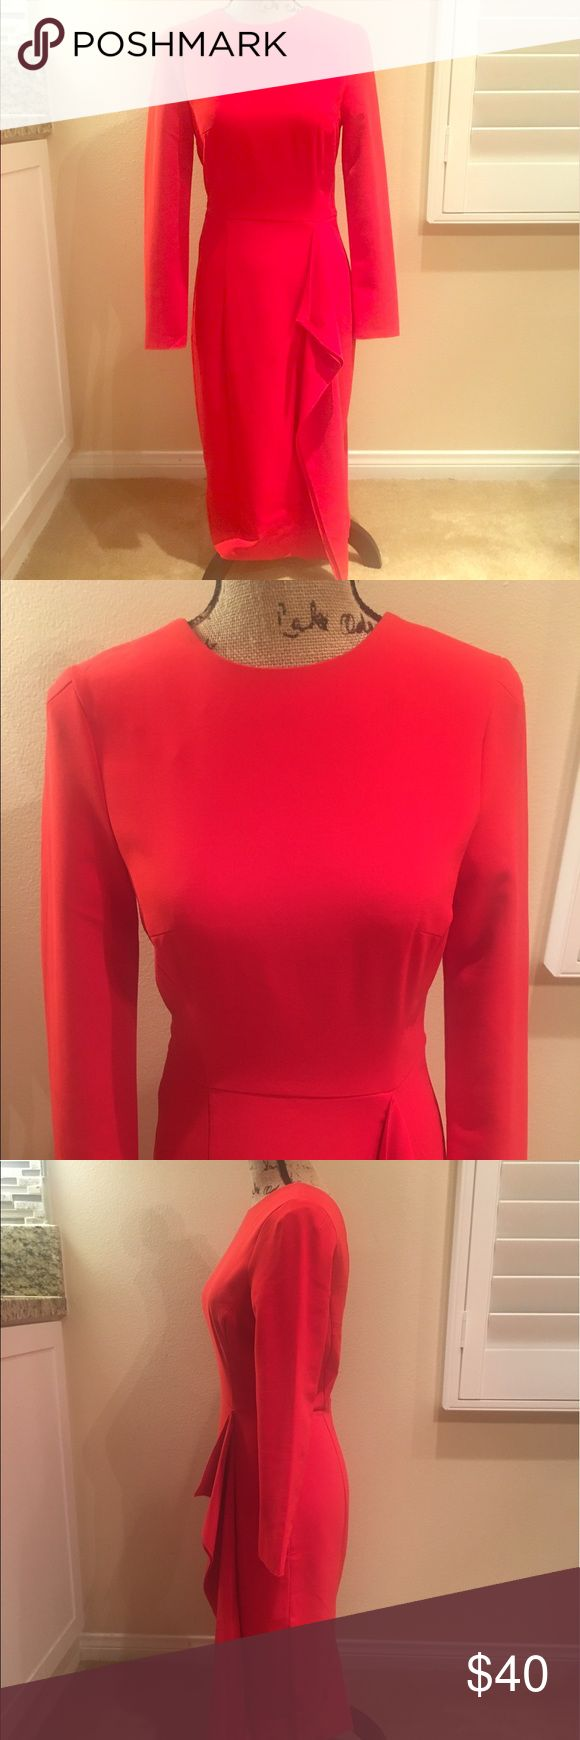 Professional Red dress Fabulous thick material doesn't wrinkle very easy, professional modest look perfect for the office or a night out, zip up back. Mid calf length Dresses